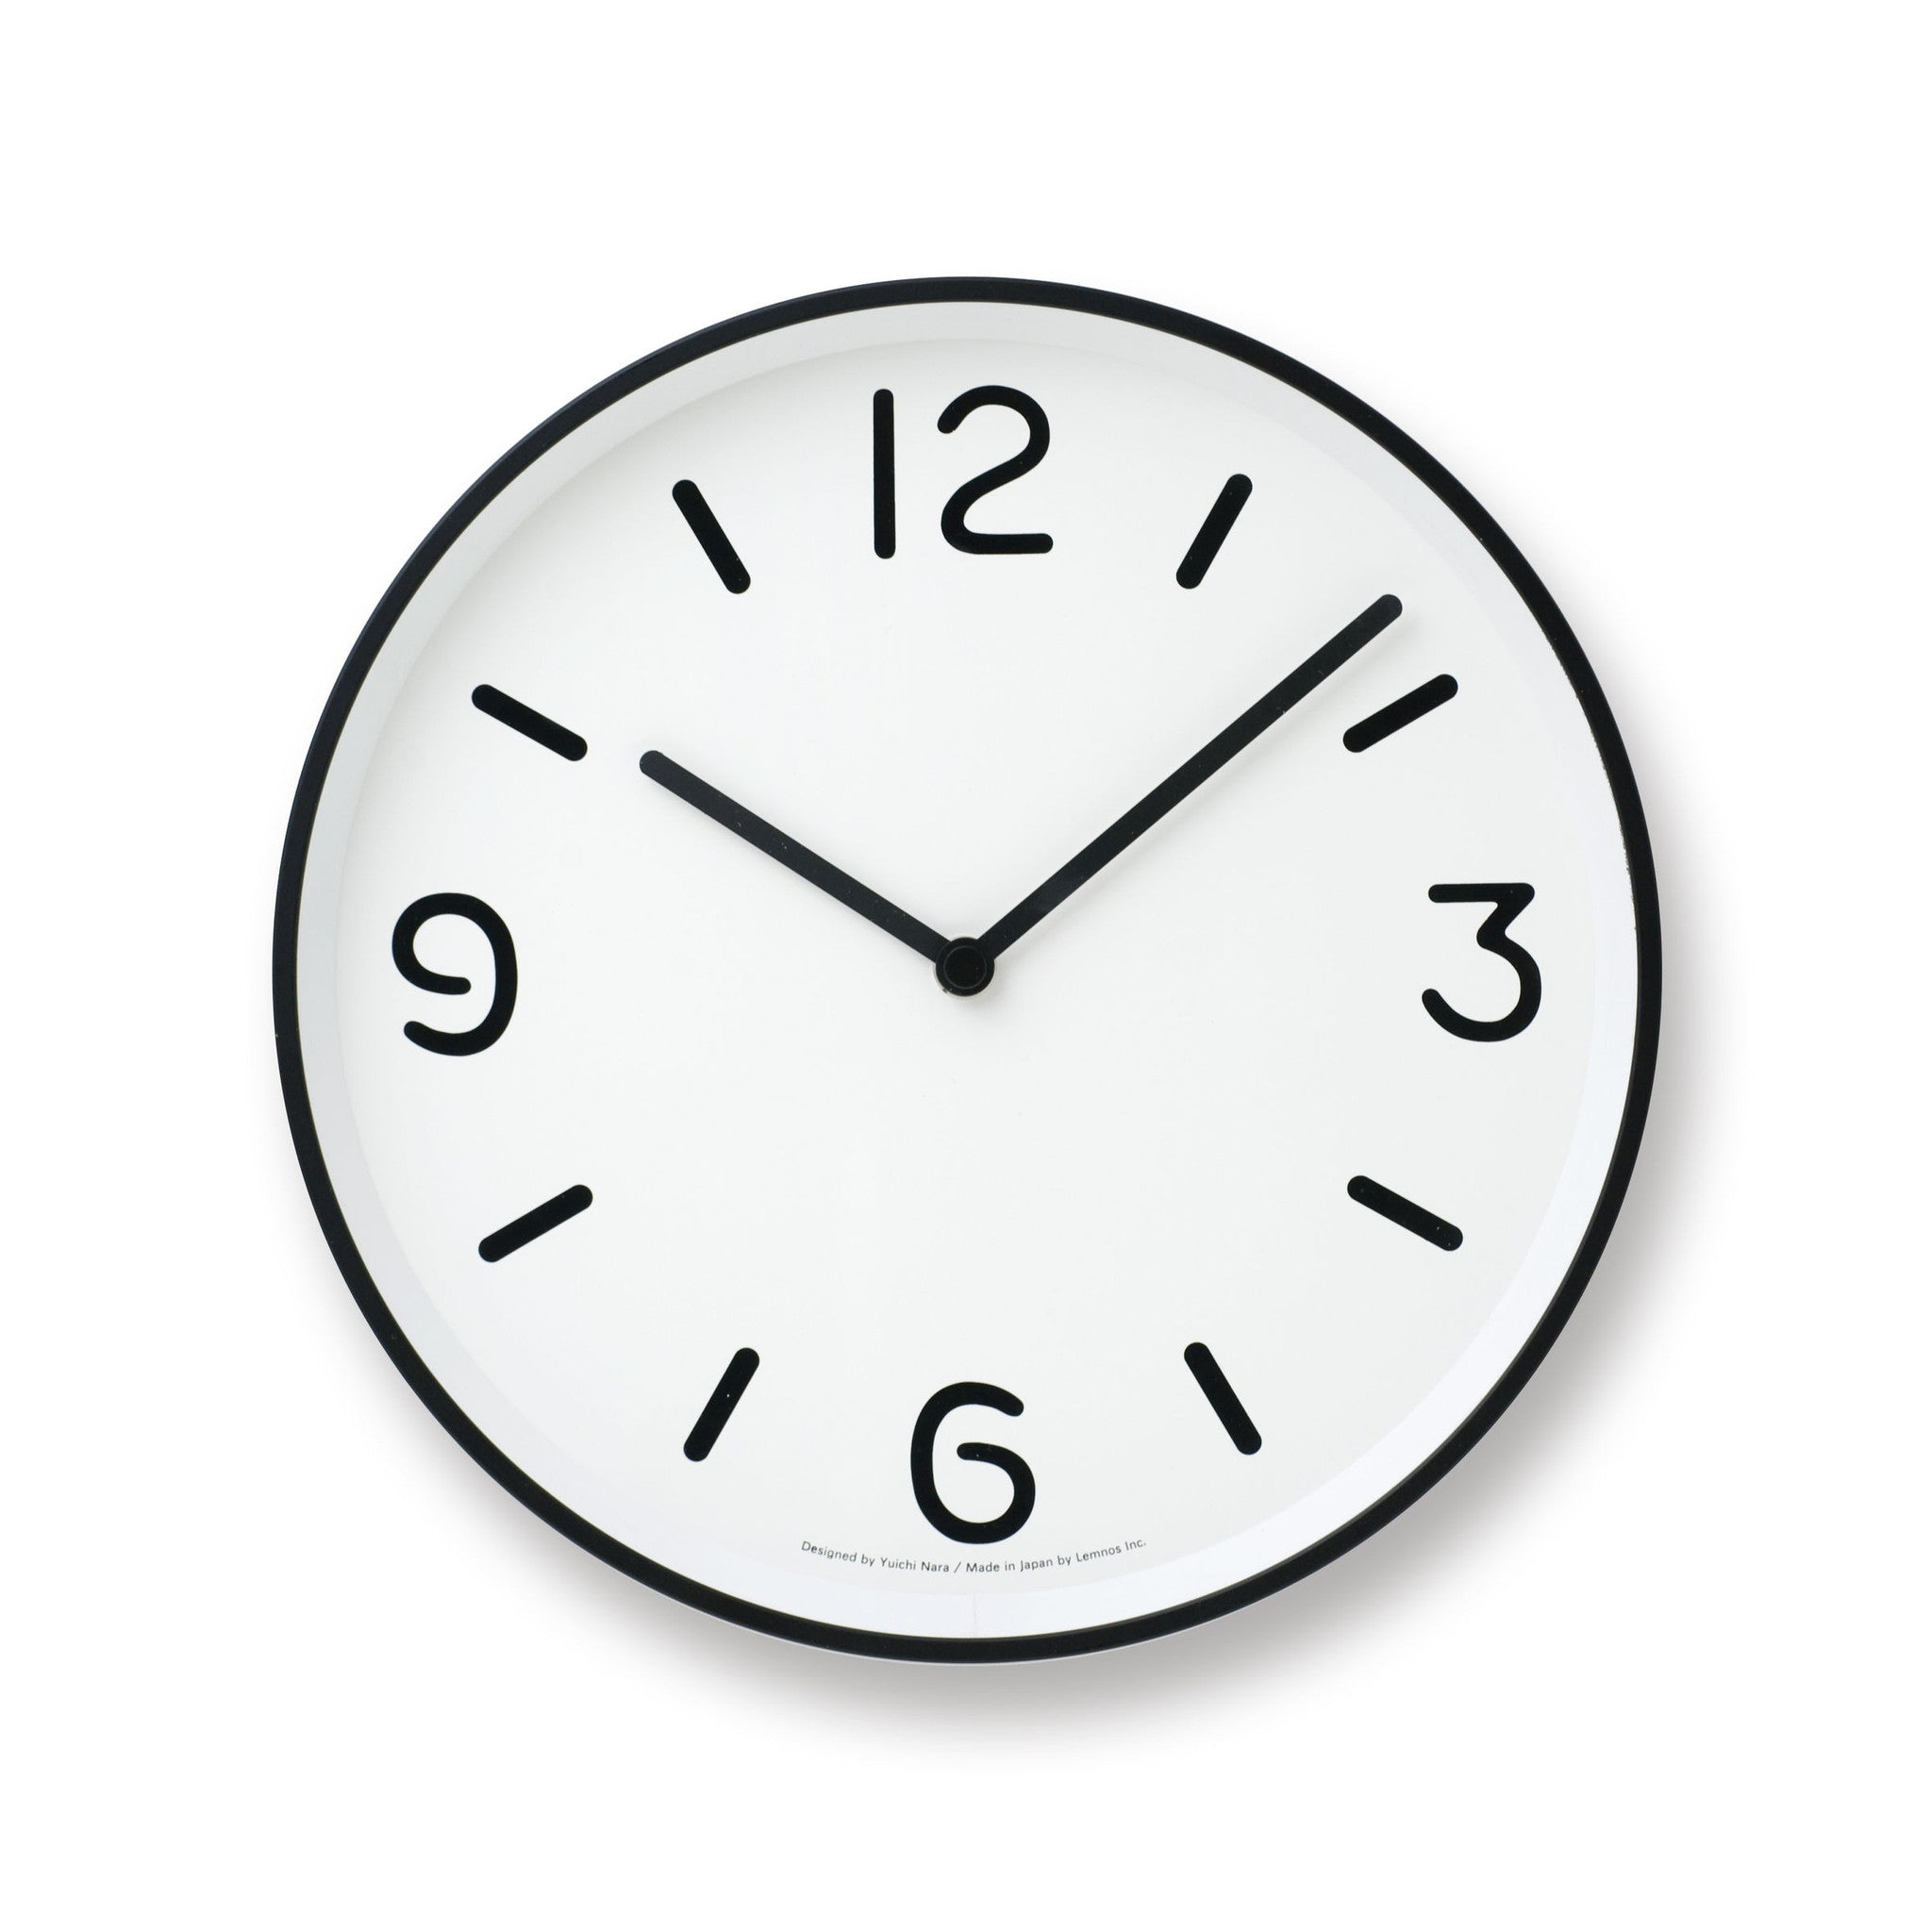 Online Home Design Free Mono Wall Clock In White Design By Lemnos Burke Decor